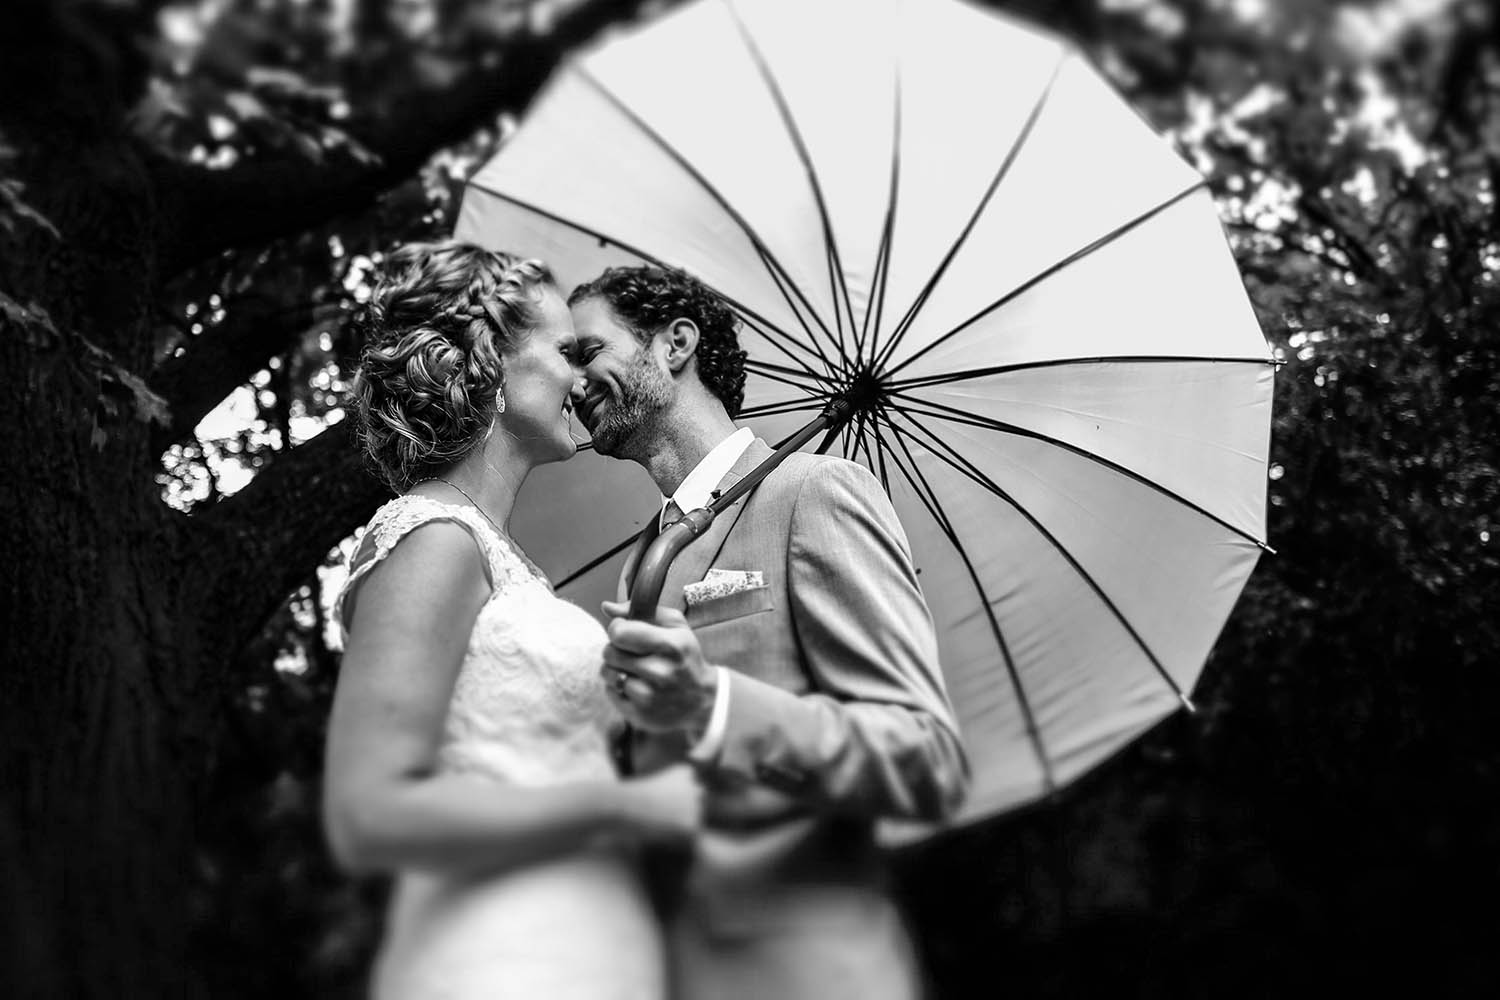 bride and groom kiss under a vintage umbrella during an Ottawa wedding